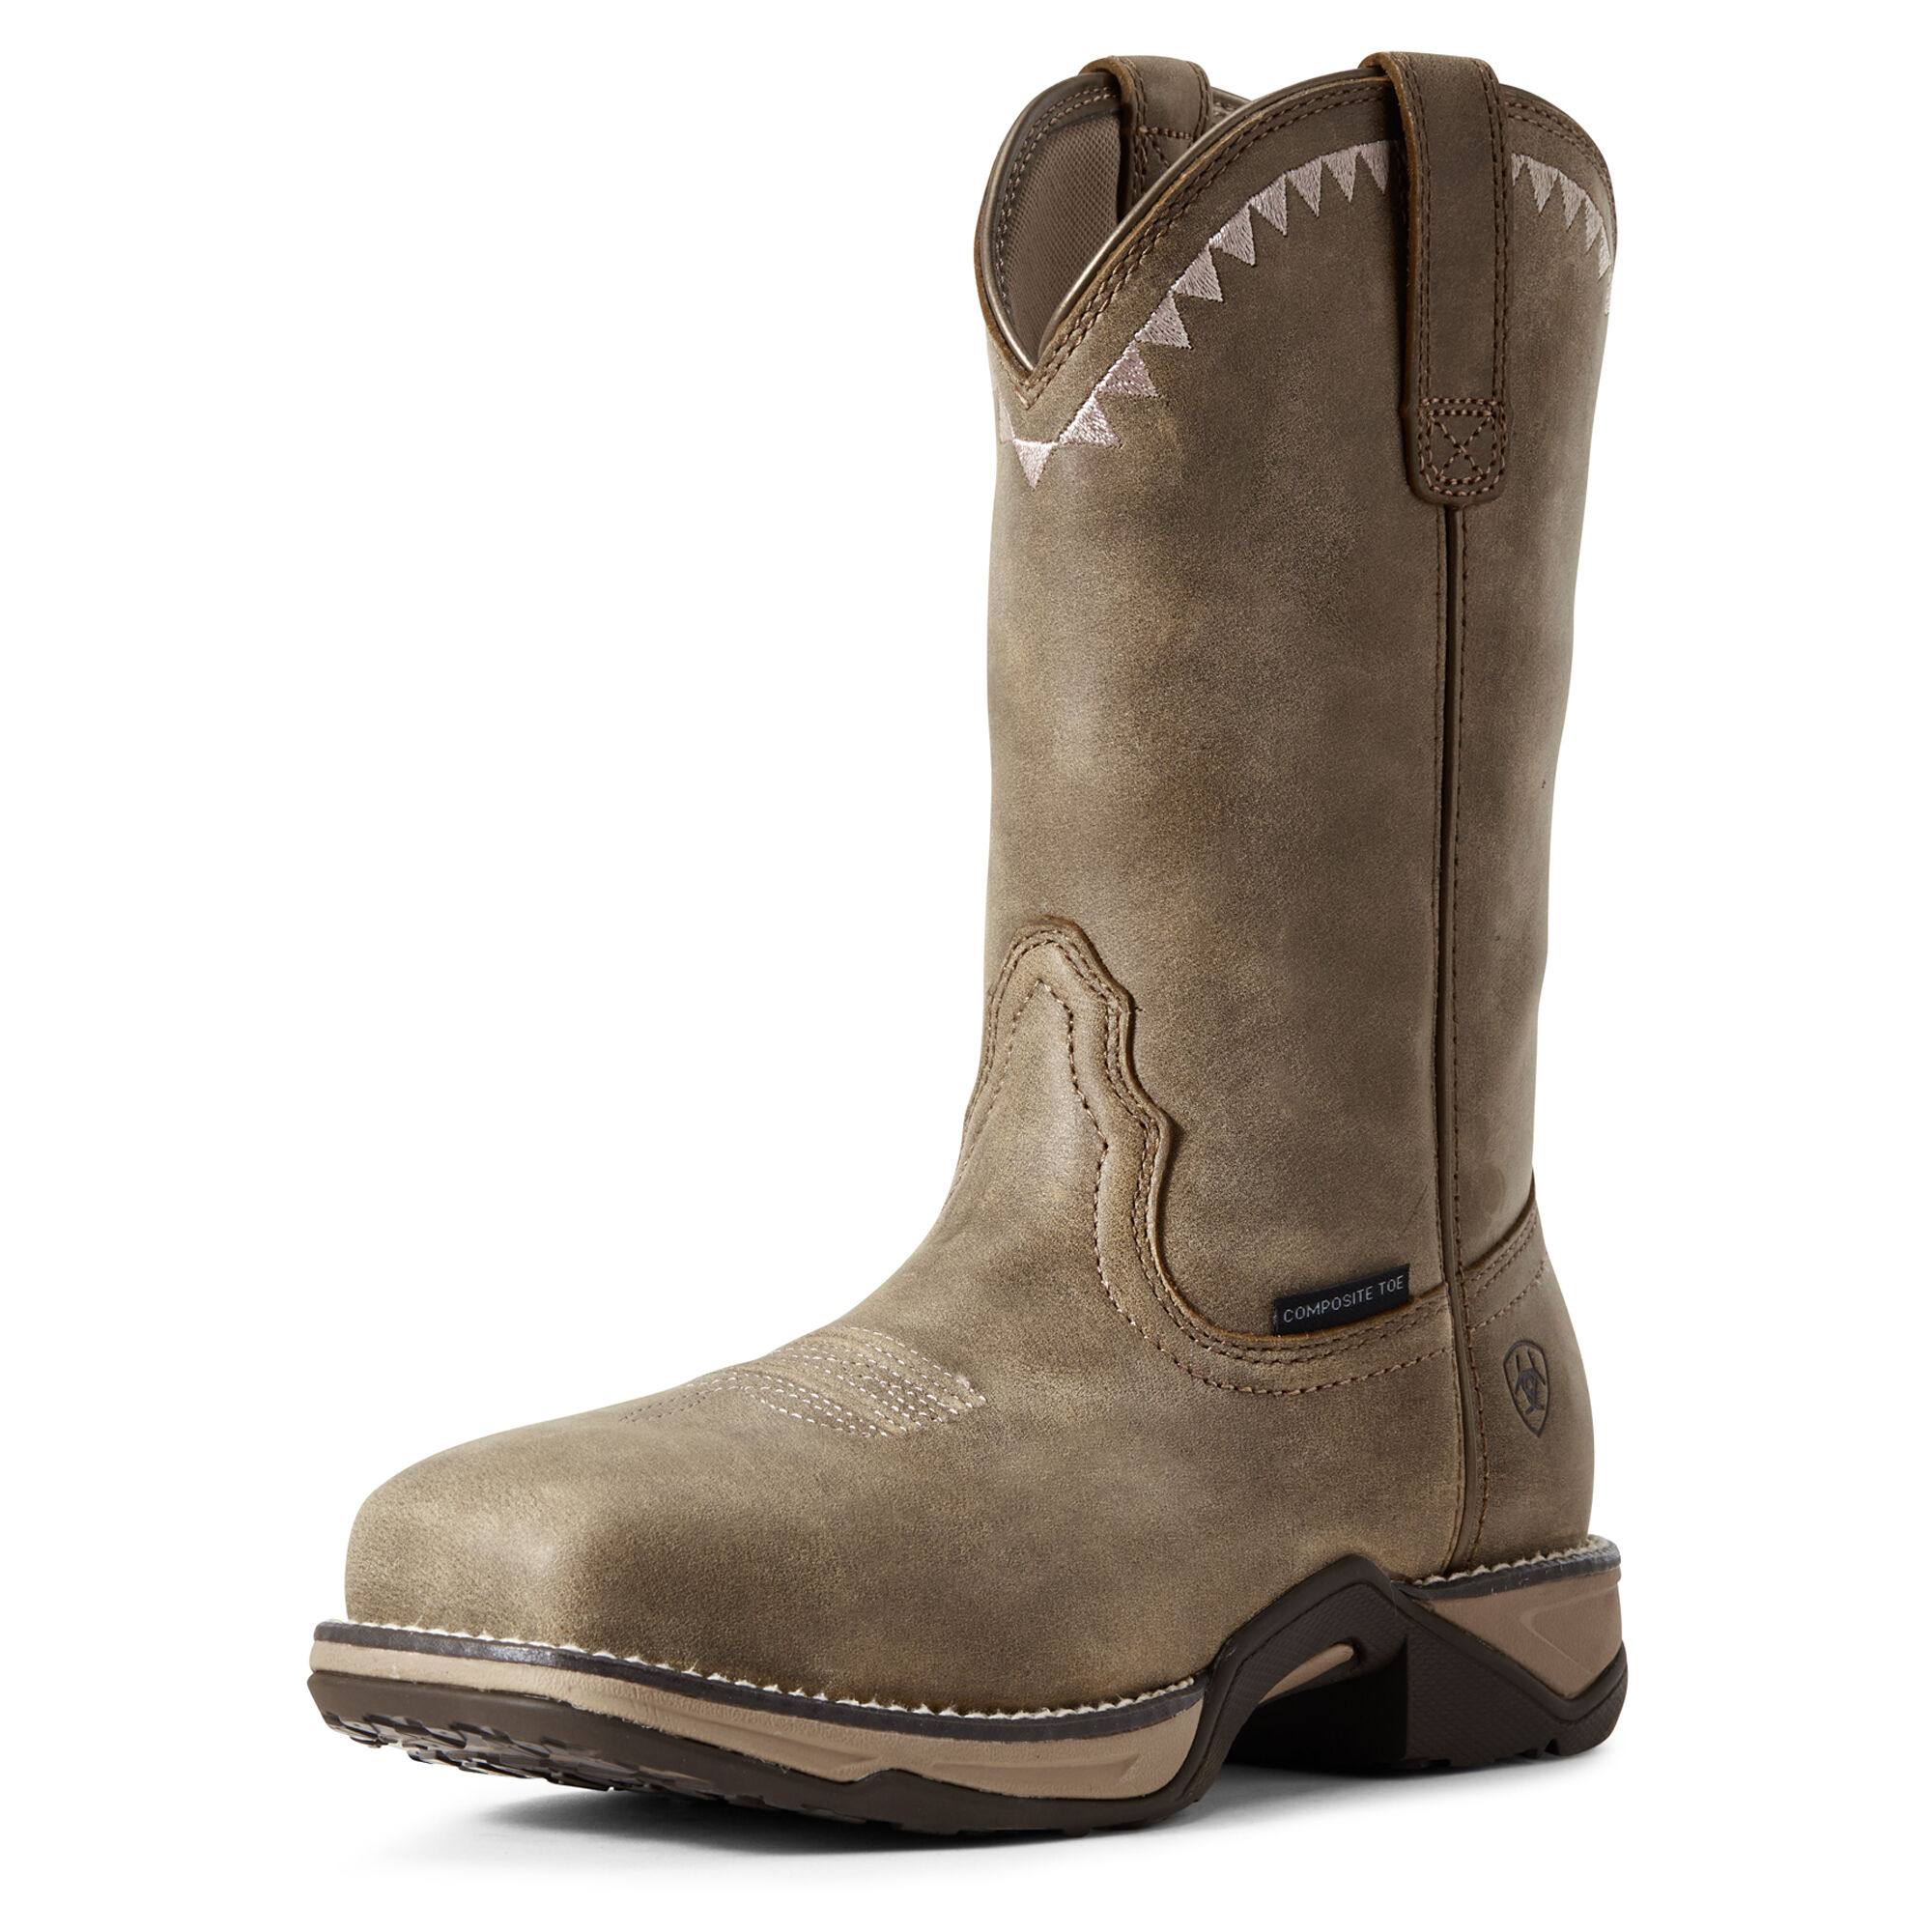 Women's Anthem Deco Composite Toe Work Boots in Brown Bomber by Ariat